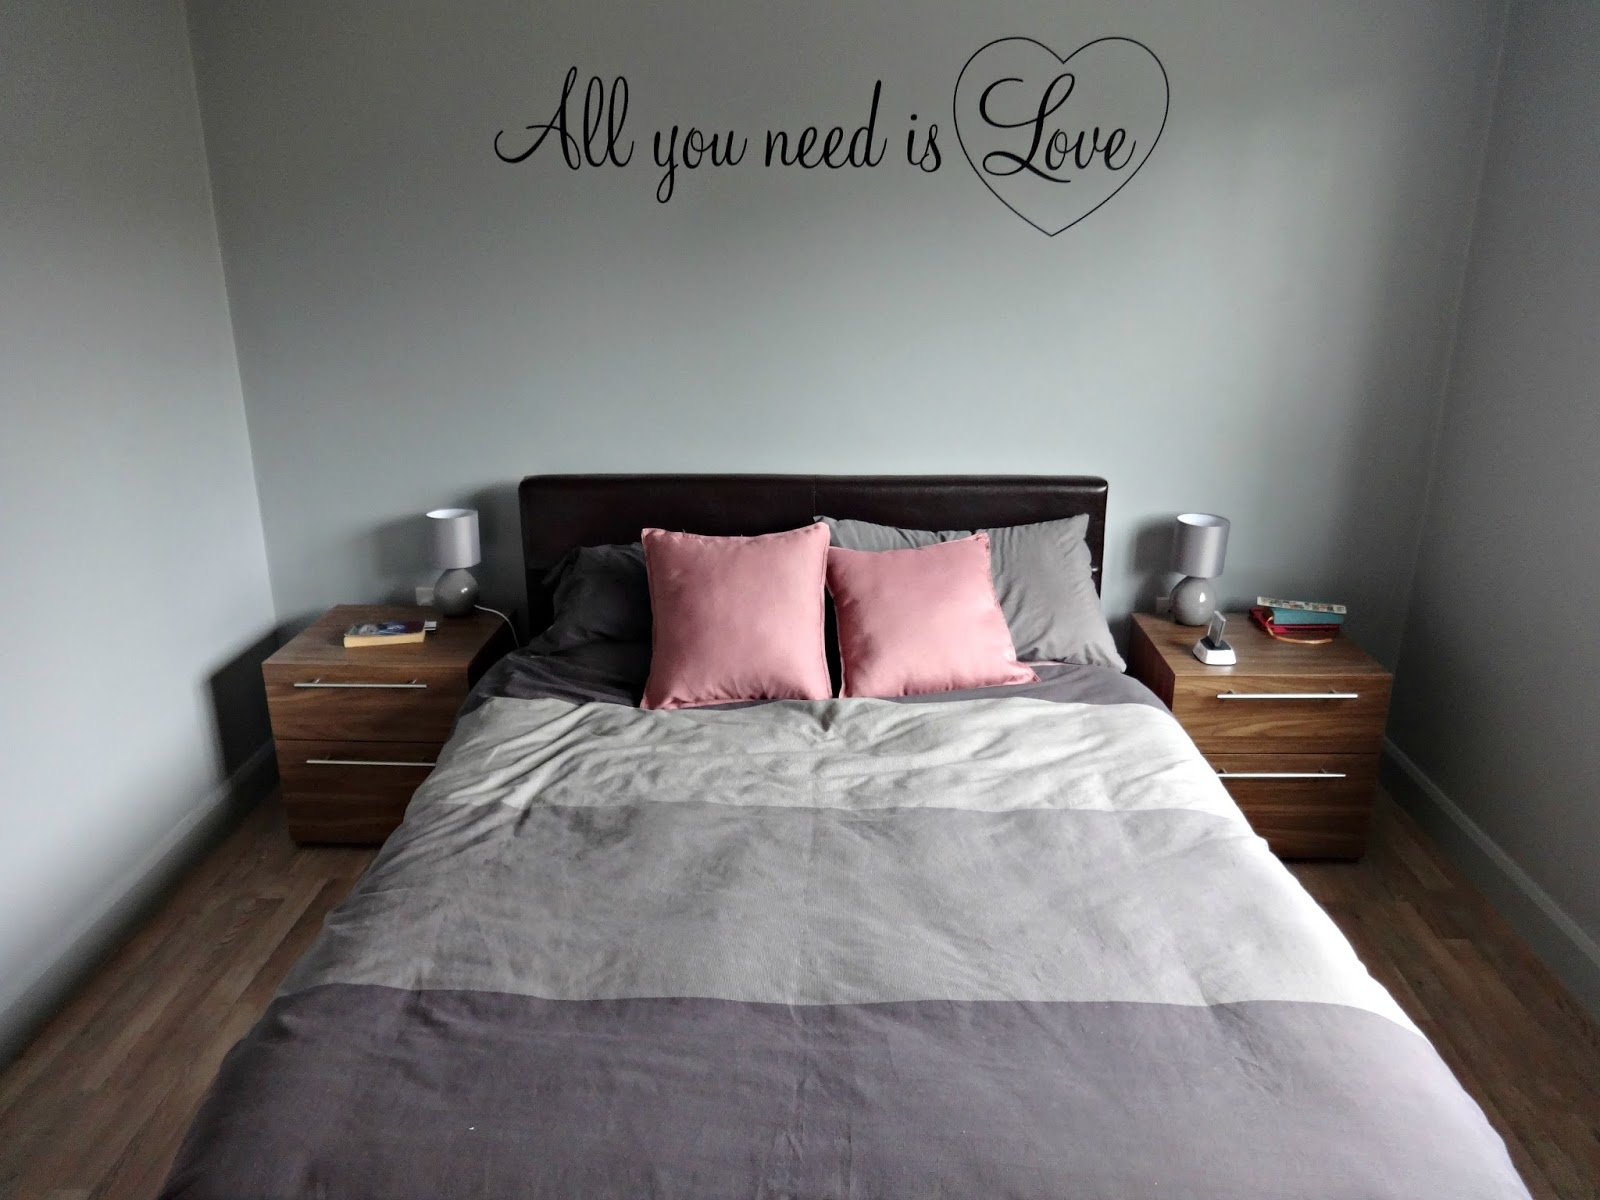 Bedroom makeover on a budget